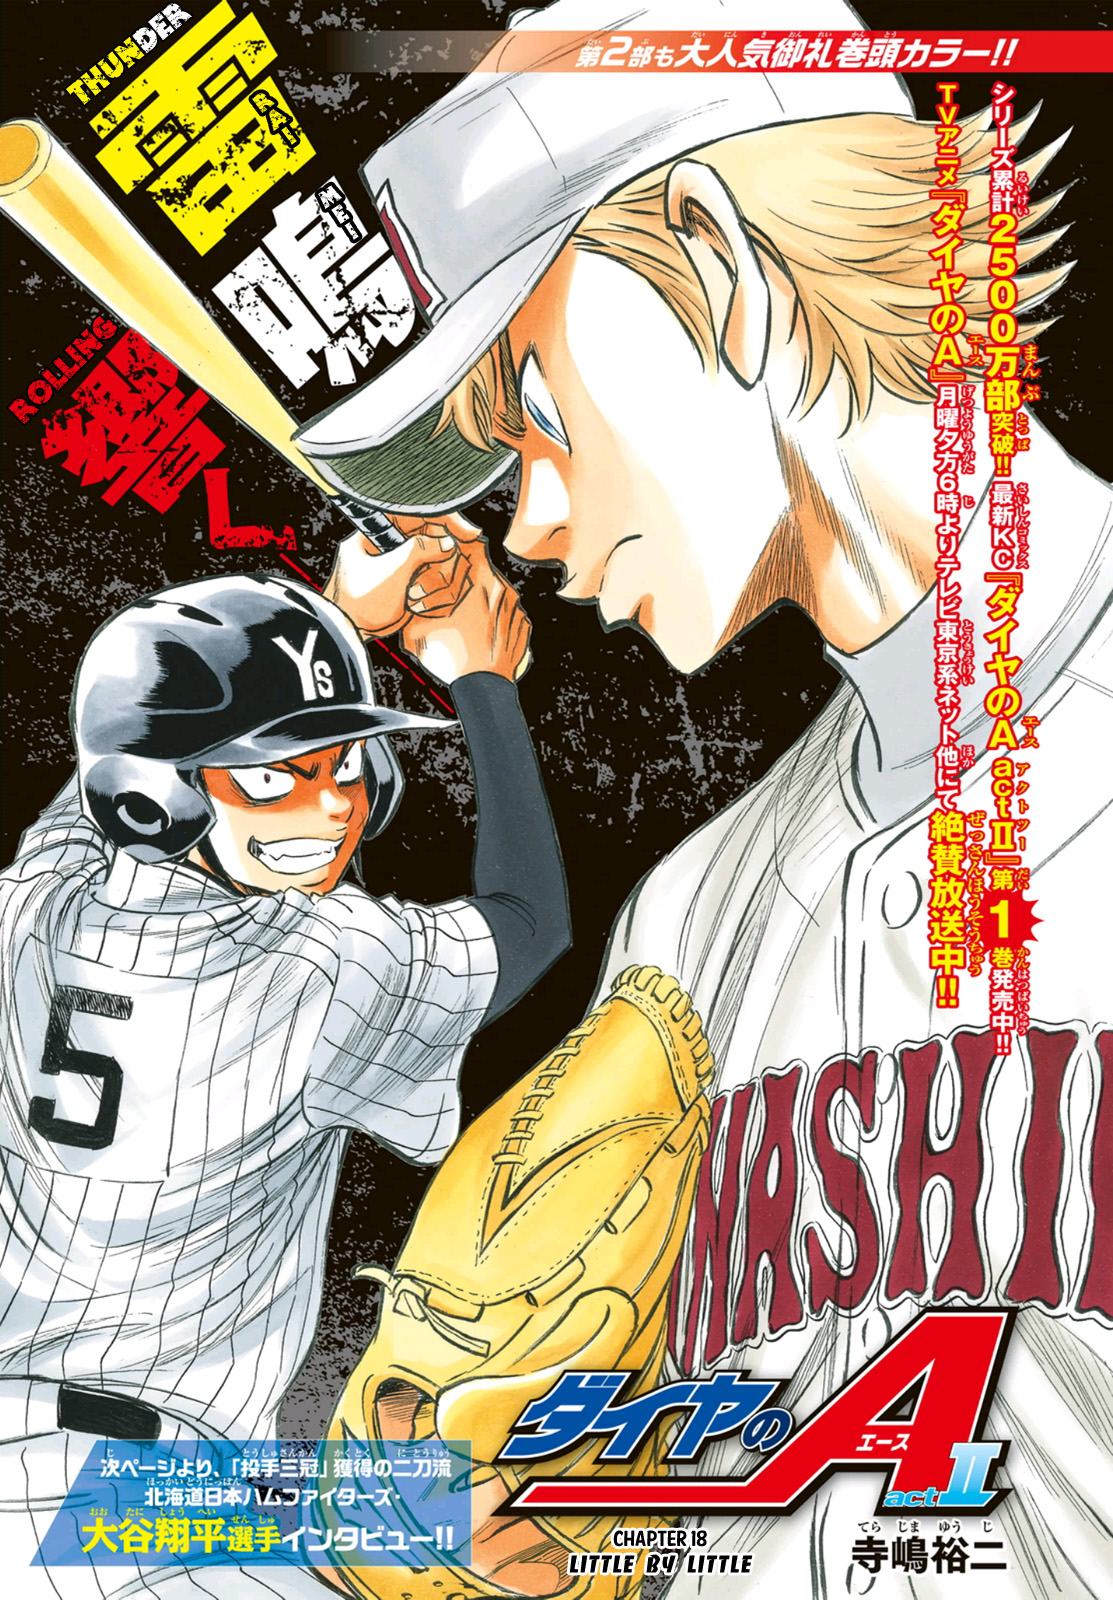 Daiya no A - Act II - Chapter 18